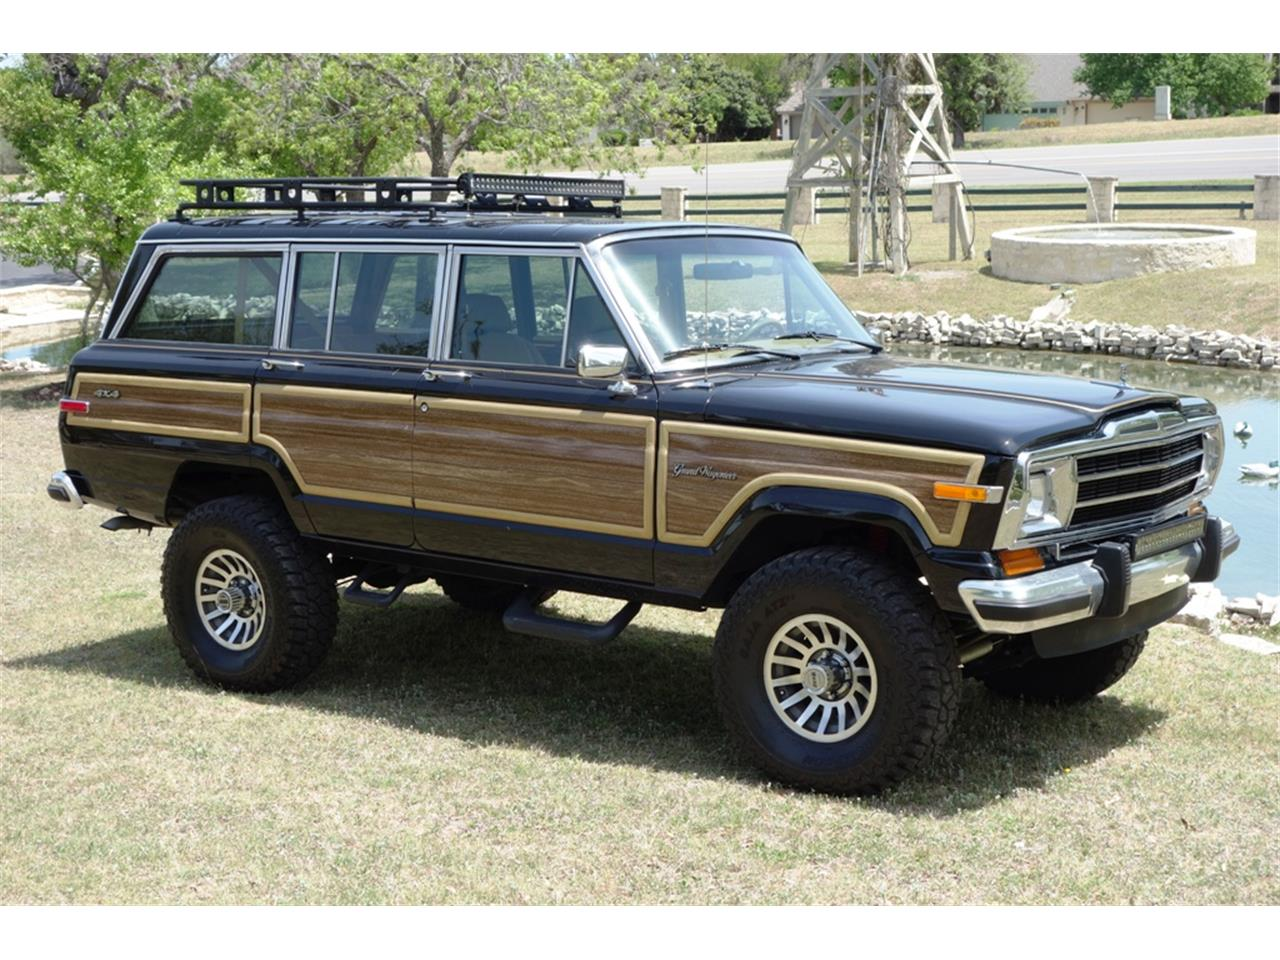 1988 jeep grand wagoneer for sale classiccars com cc 1091907 1988 jeep grand wagoneer for sale